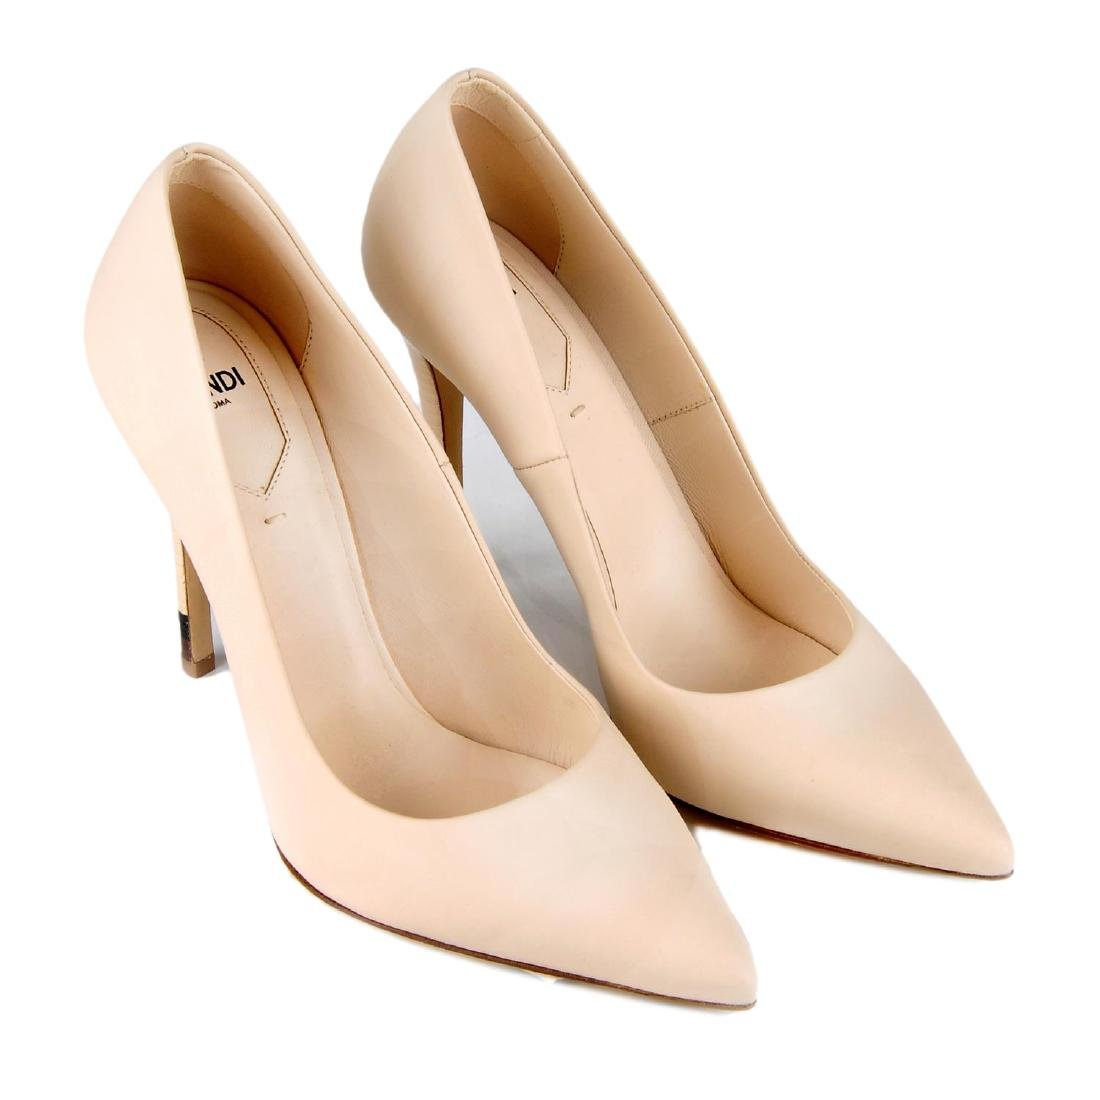 FENDI - a pair of nude pink calfskin leather court